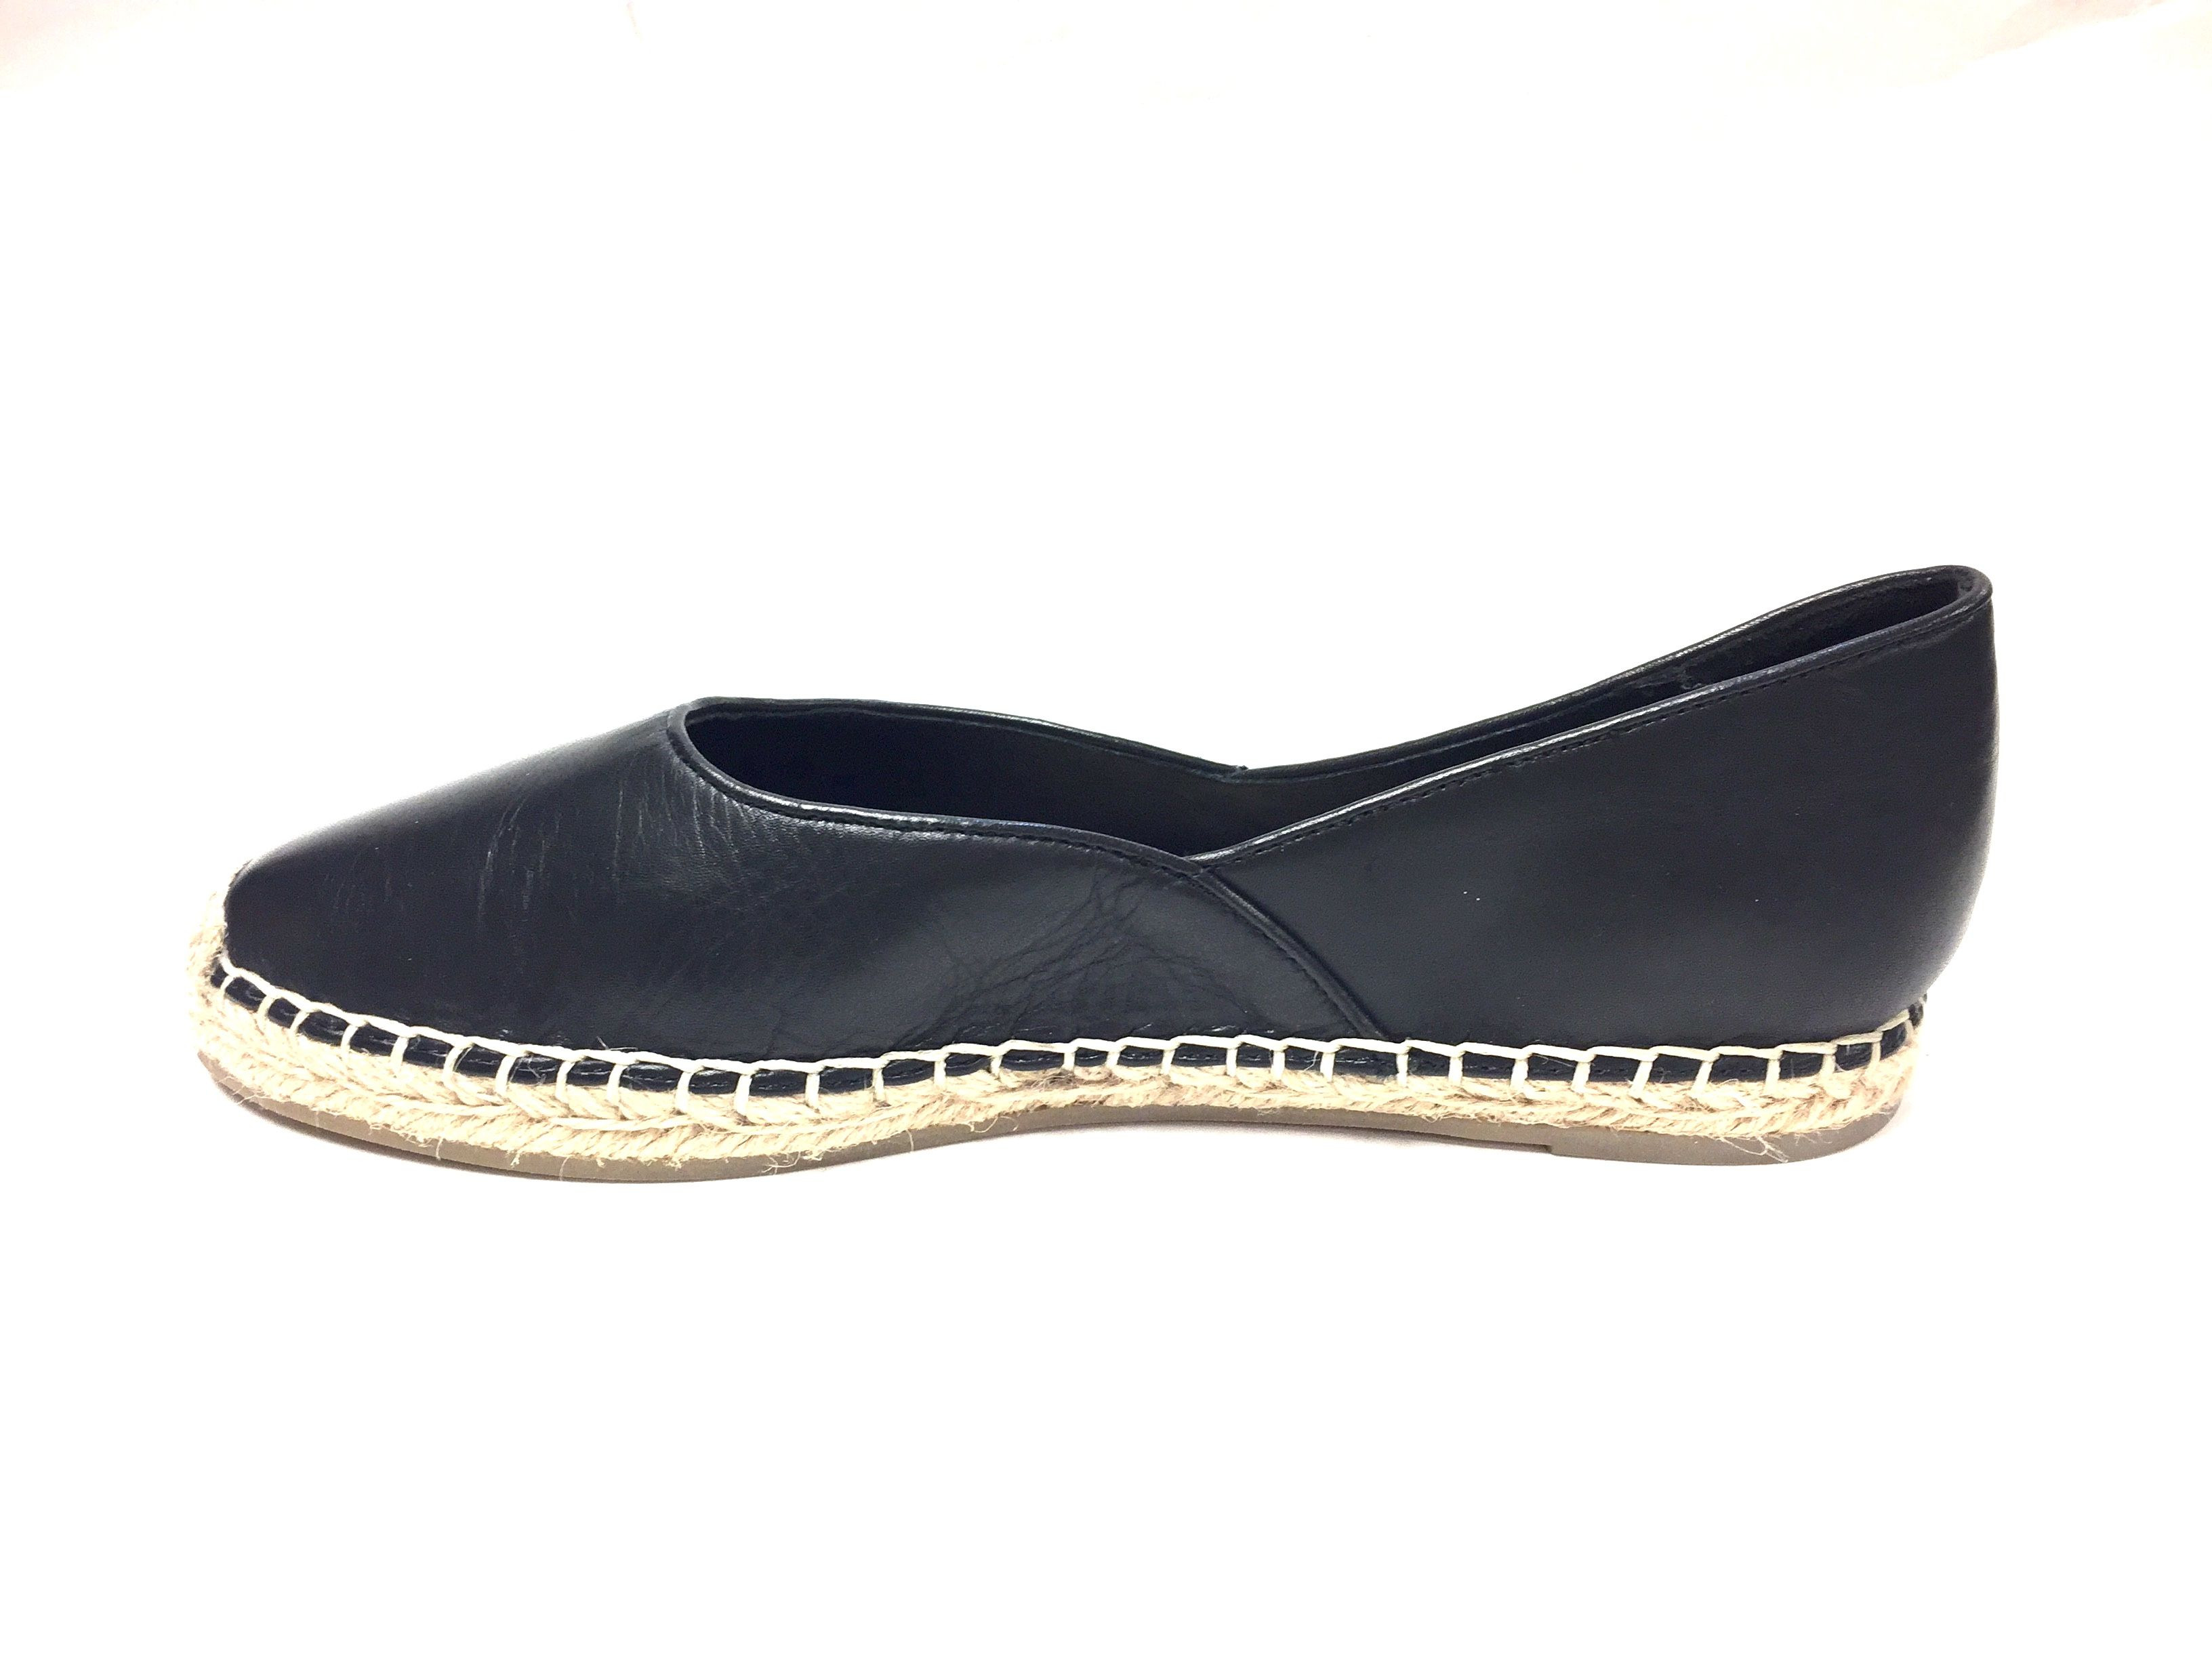 New EILEEN FISHER Black Leather Flat